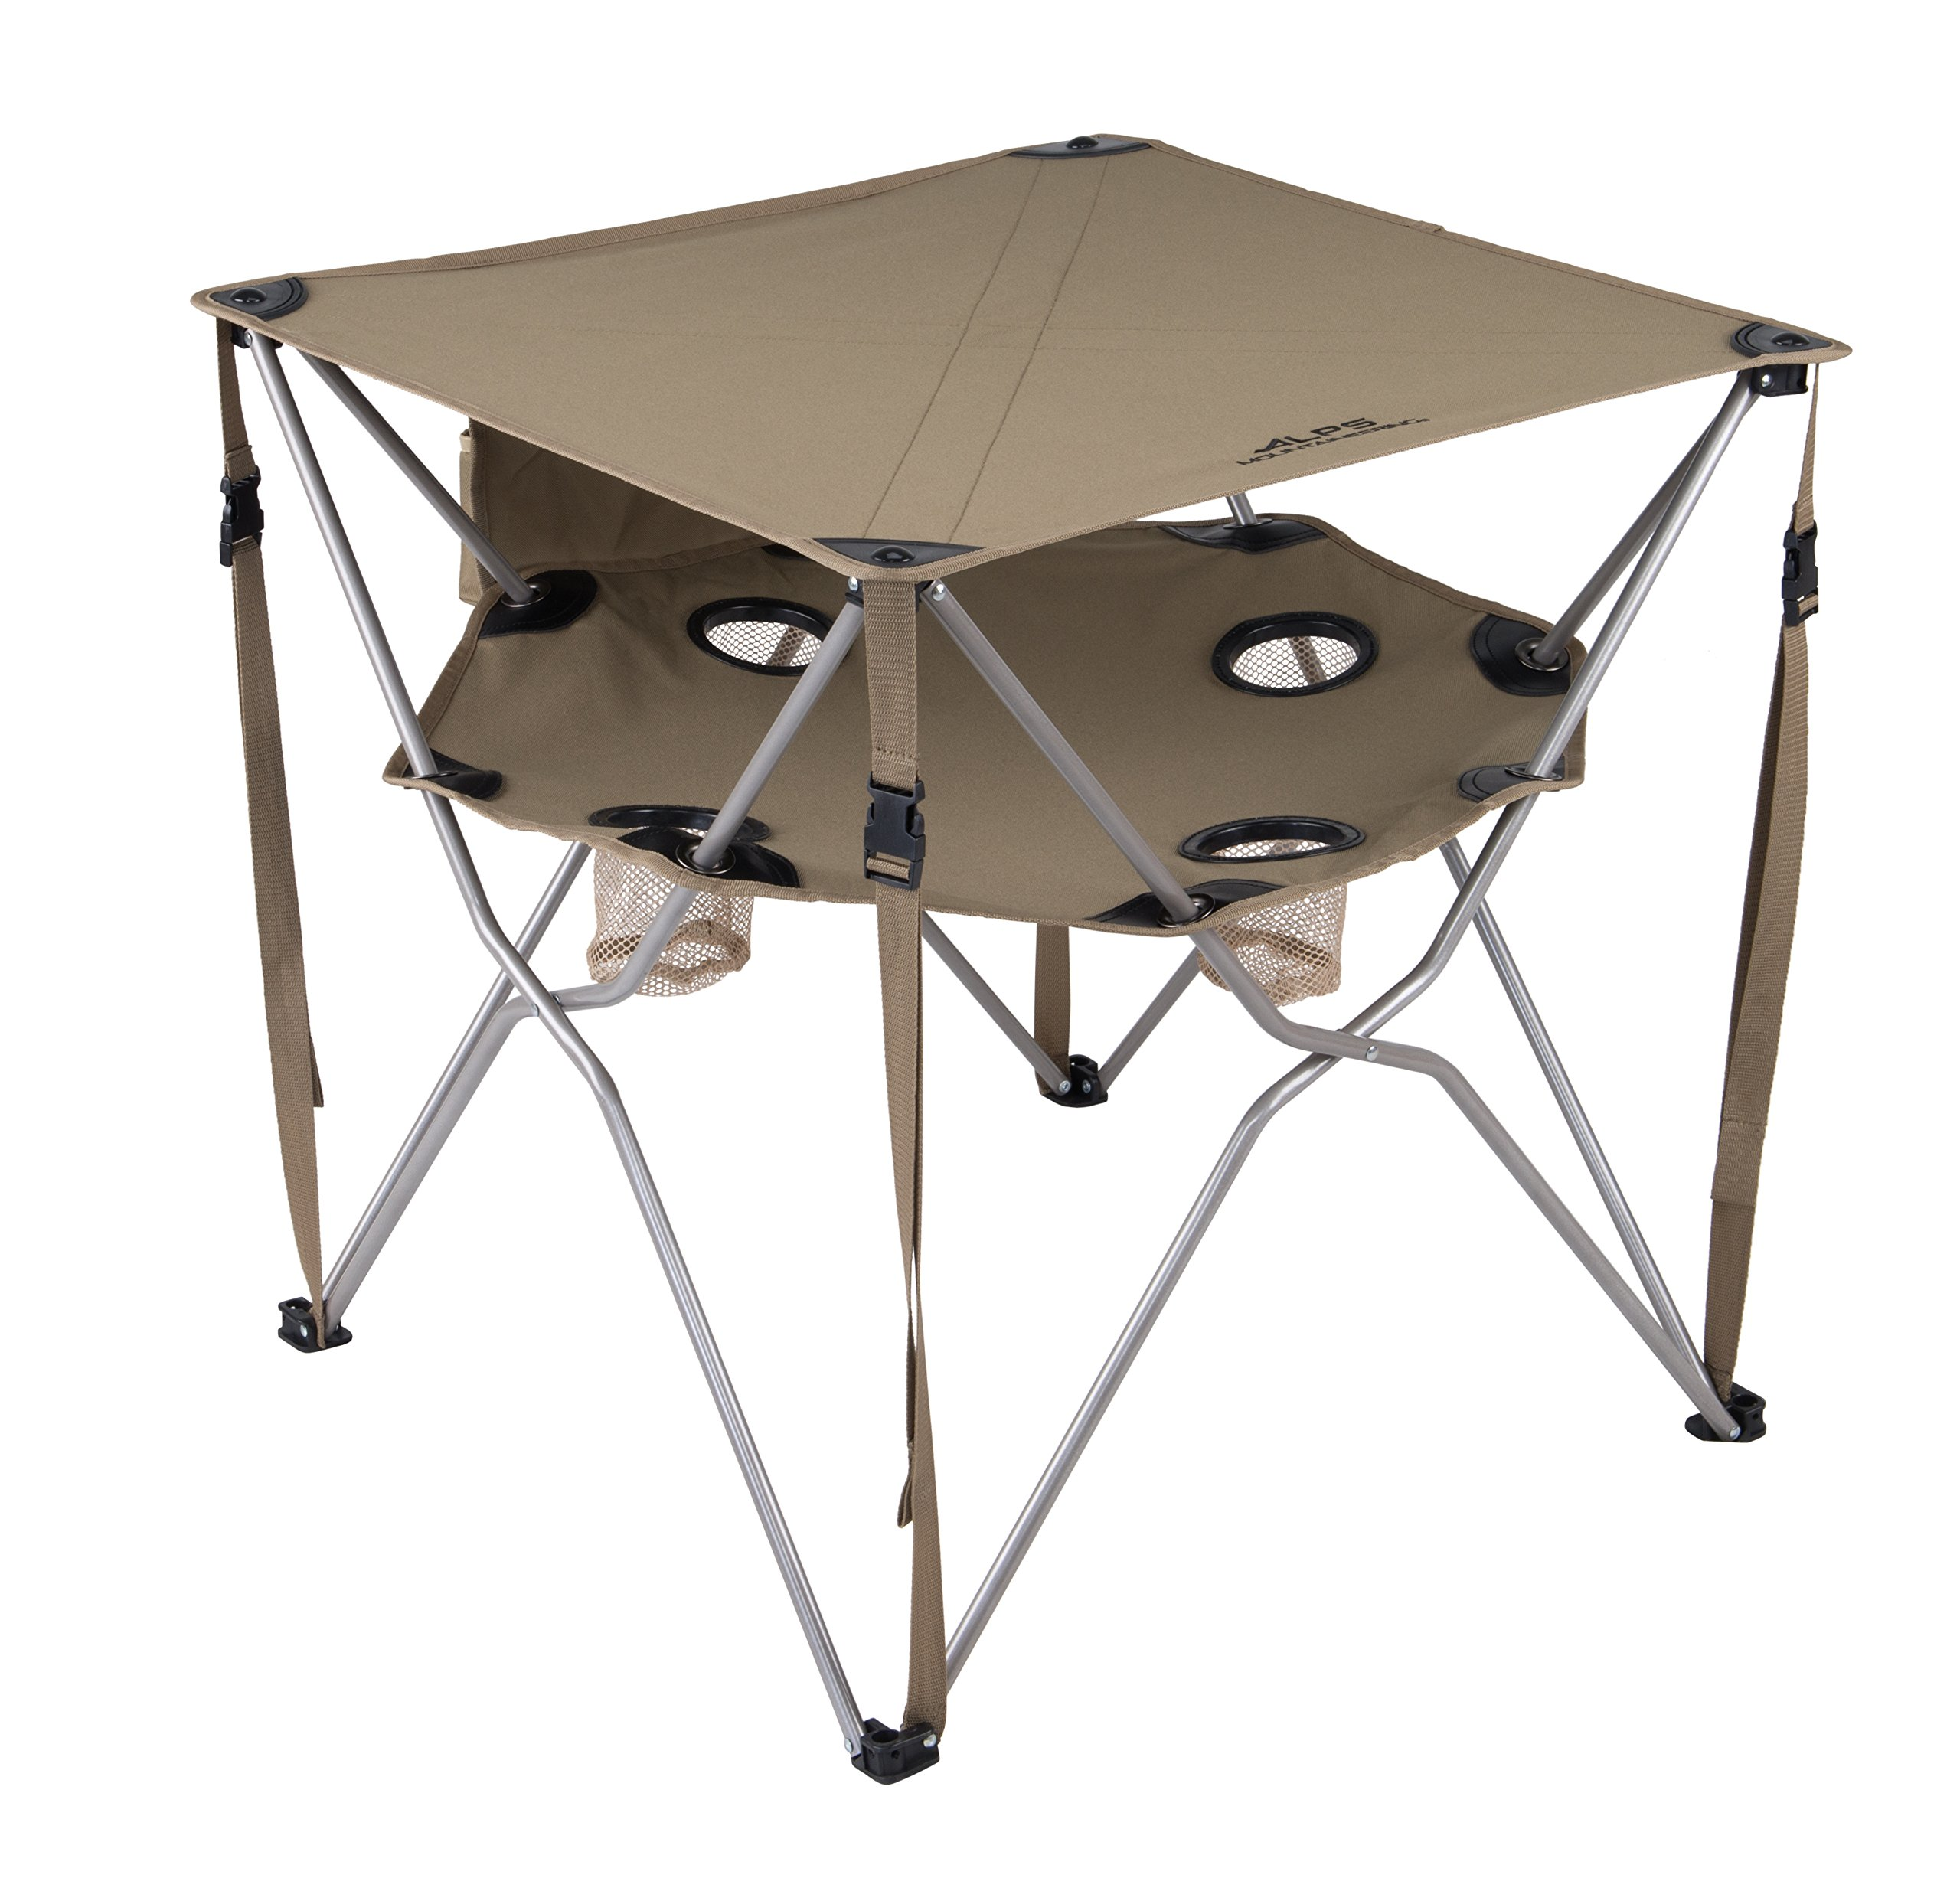 ALPS Mountaineering Eclipse Table, Khaki by ALPS Mountaineering